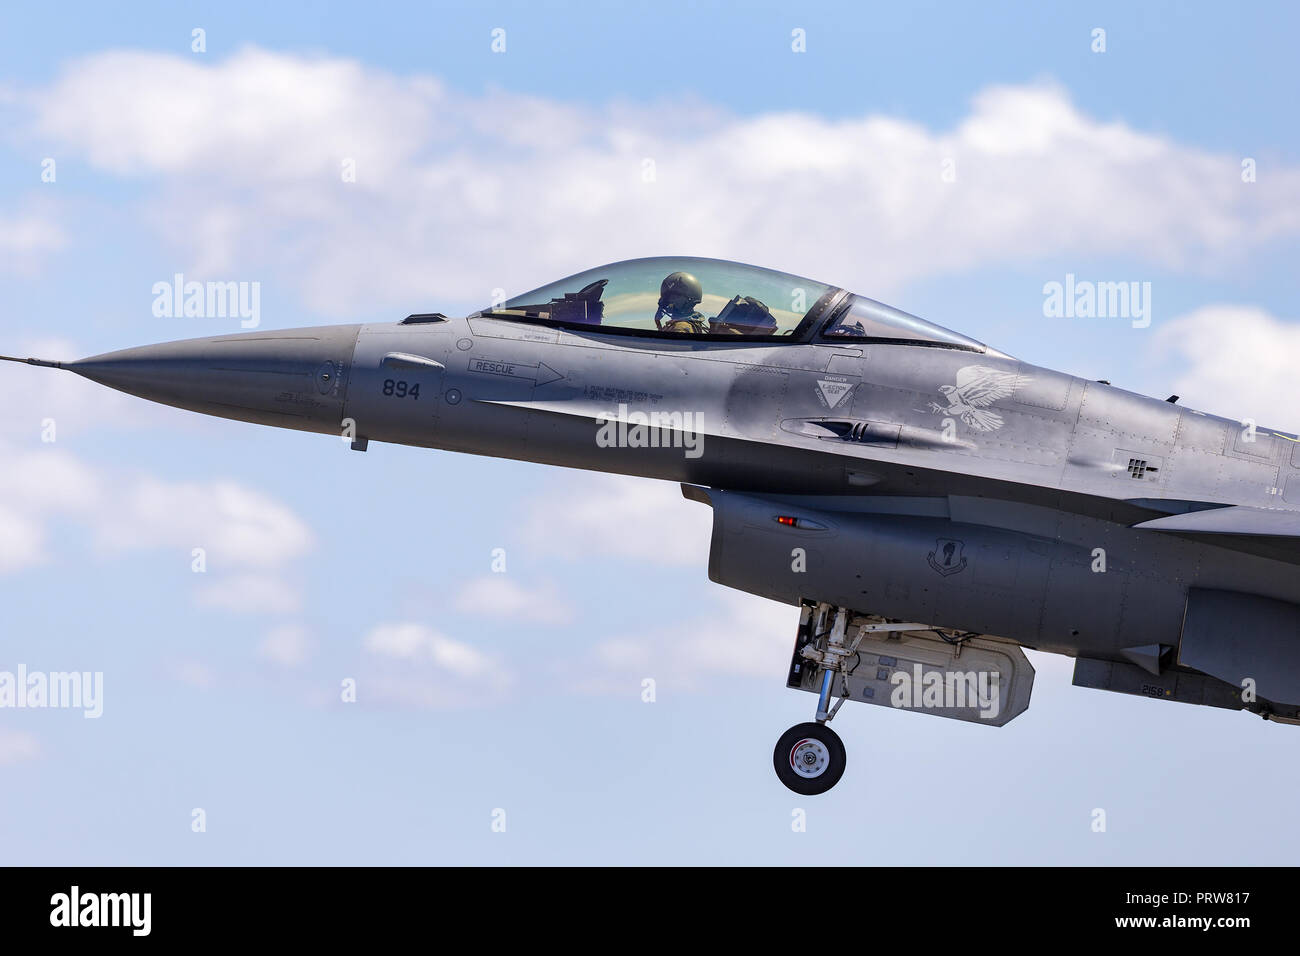 United Staes Air Force (USAF) Lockheed F-16CJ Fighting Falcon 92-3894 from the 14th Fighter Squadron, 35th Fighter Wing at Misawa Air Base, Japan. - Stock Image